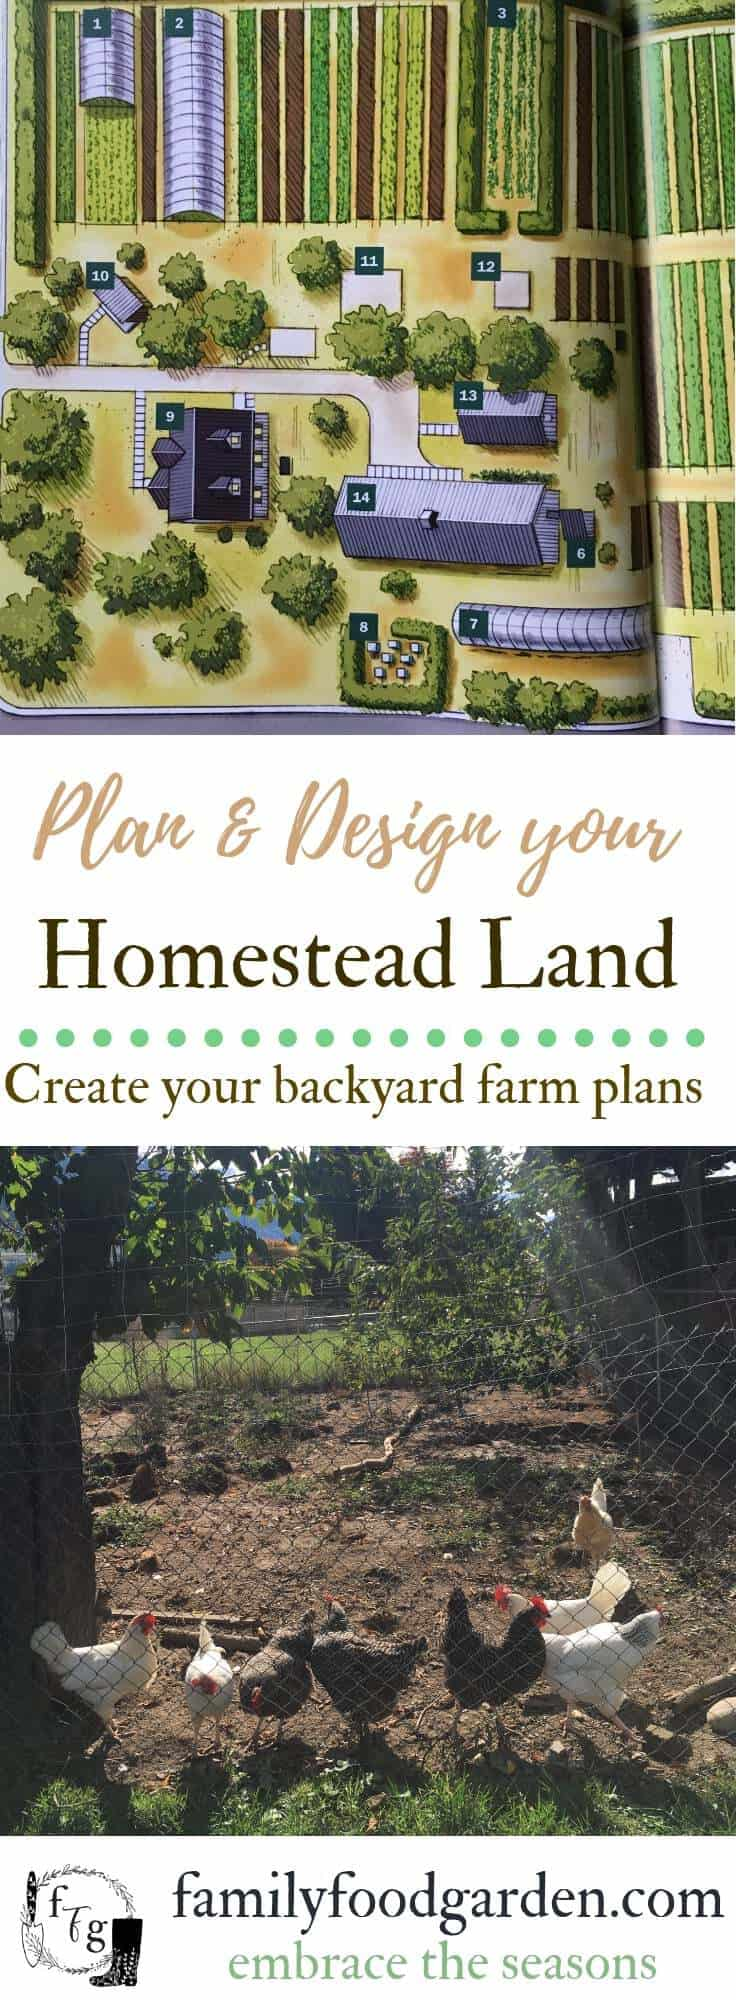 Homestead planning and design #homestead #homesteading #homesteaddesign #gardenplanning #chickenkeeping #farmplans #farmdesign